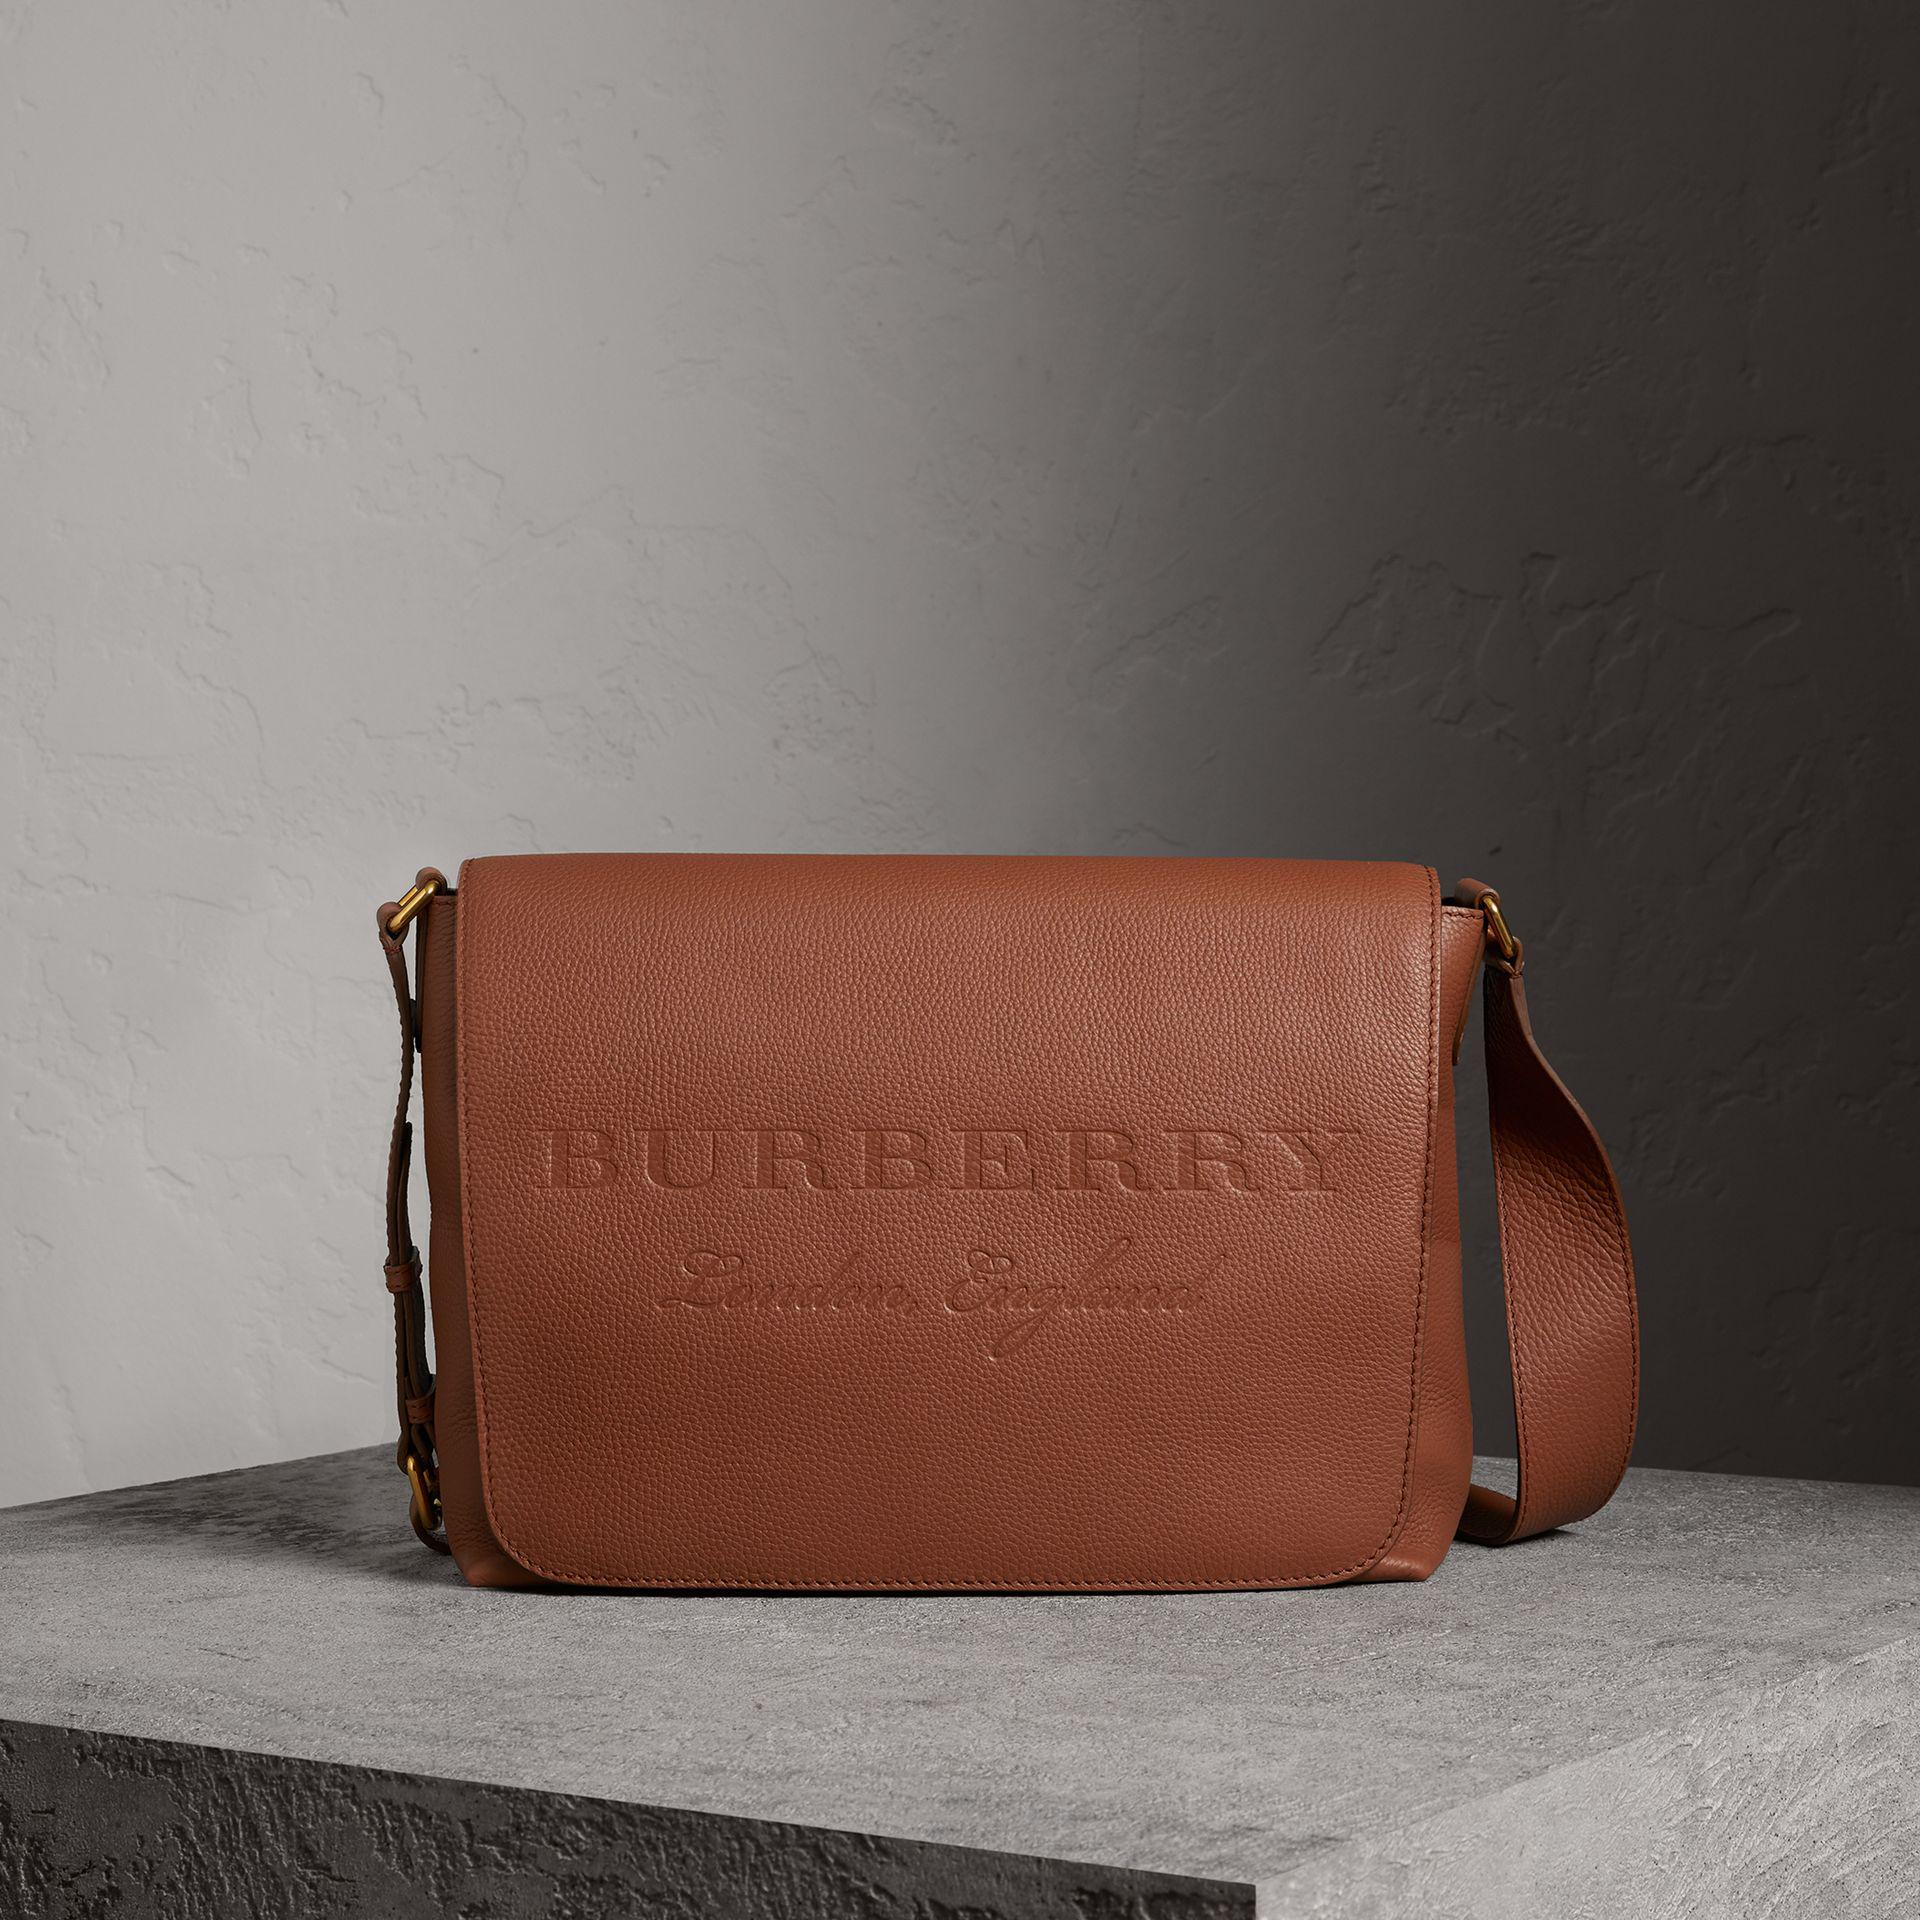 2d606bdd4f10 Lyst - Burberry Large Embossed Leather Messenger Bag in Brown